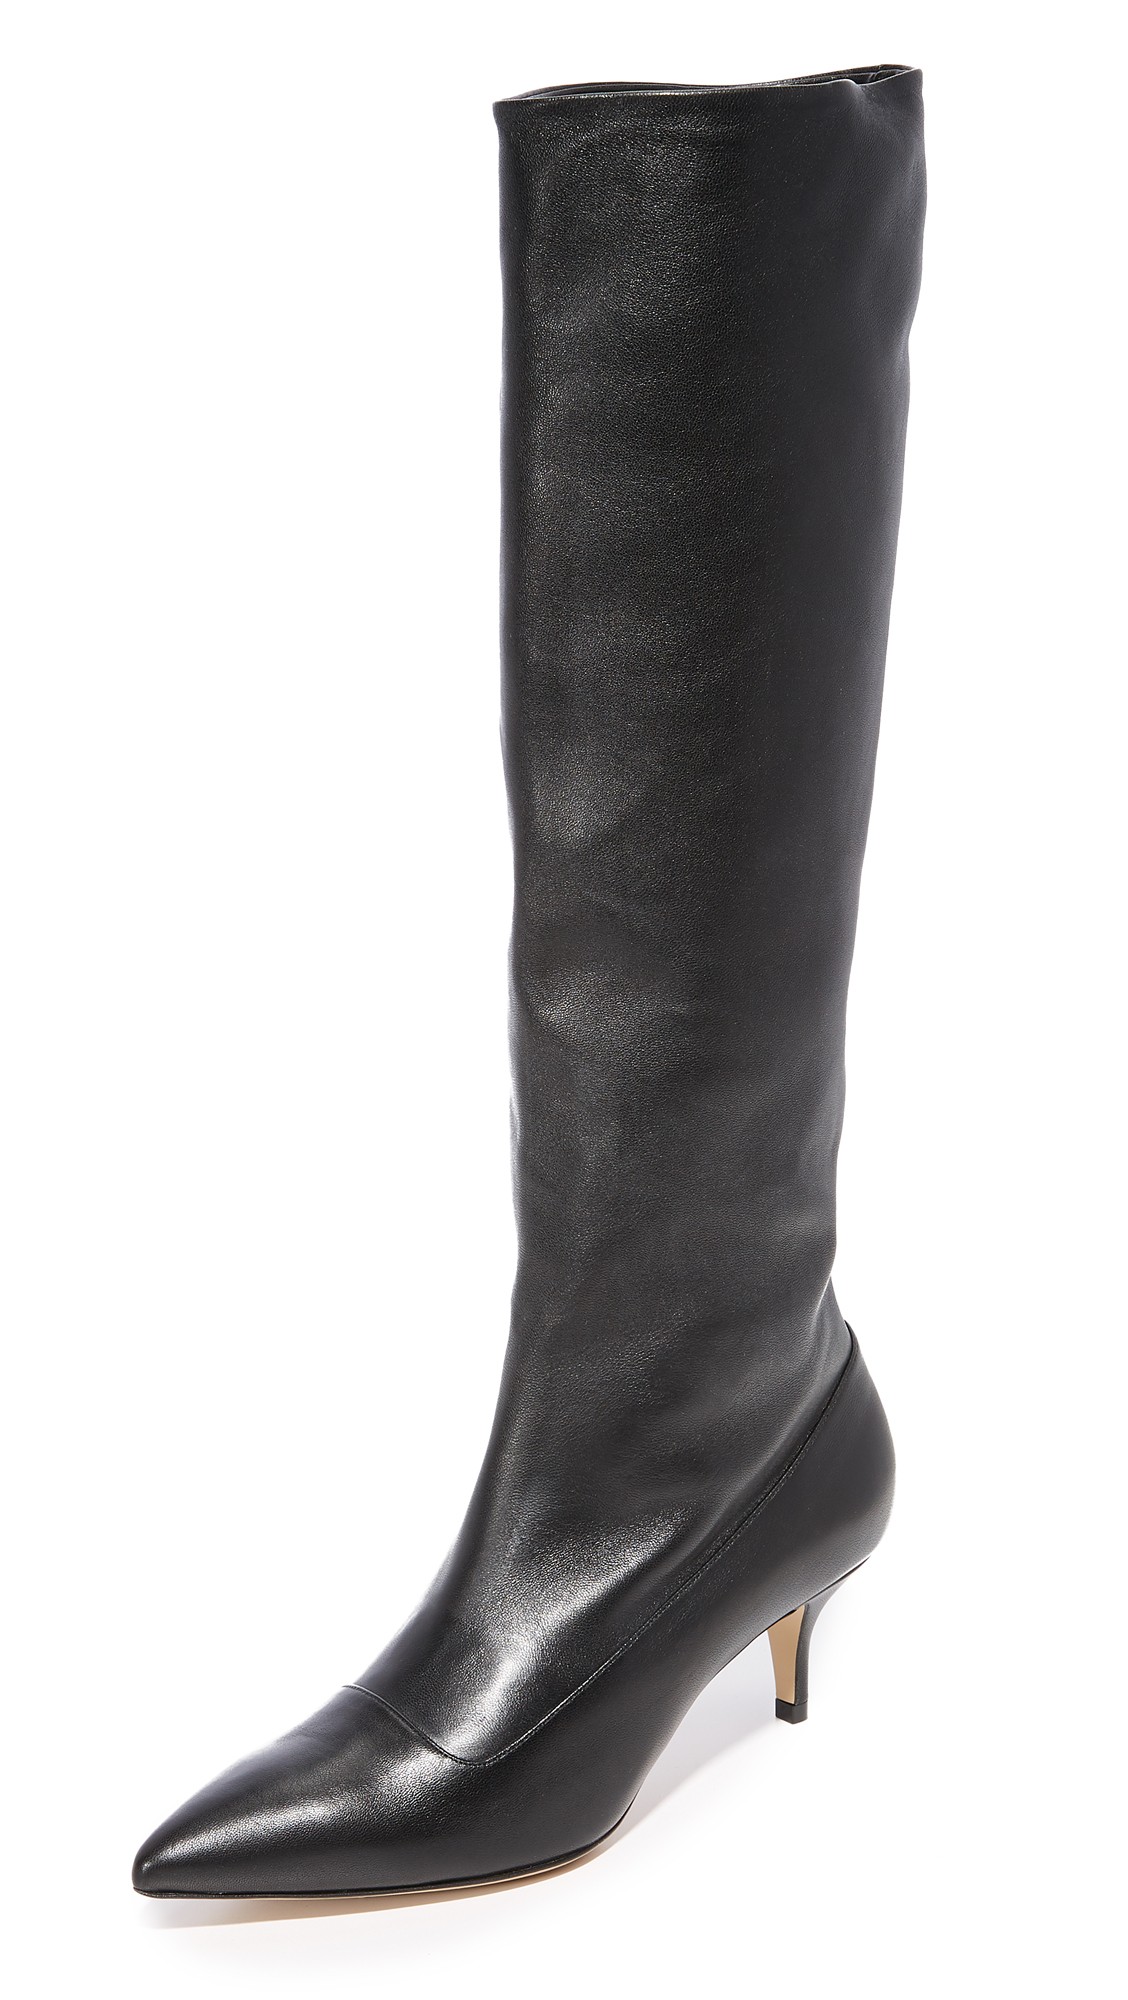 Paul Andrew Nappa Slouchy Boots - Black